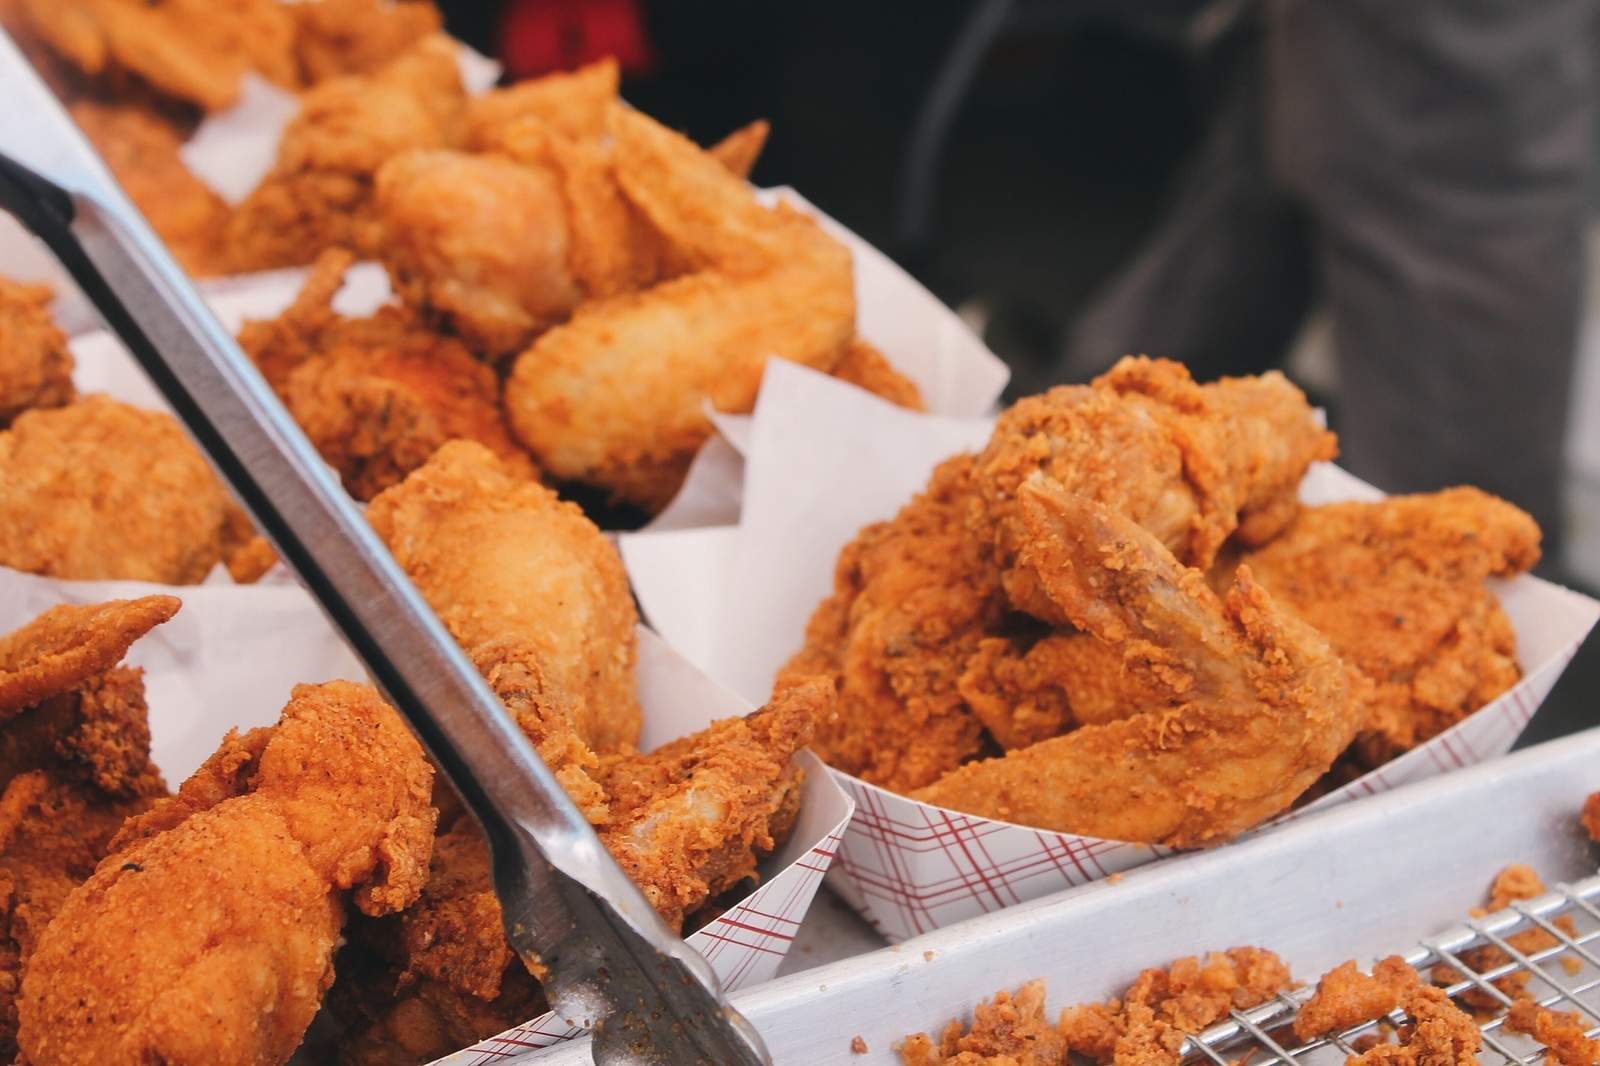 LIST: Houstonians say these local spots serve the best fried chicken